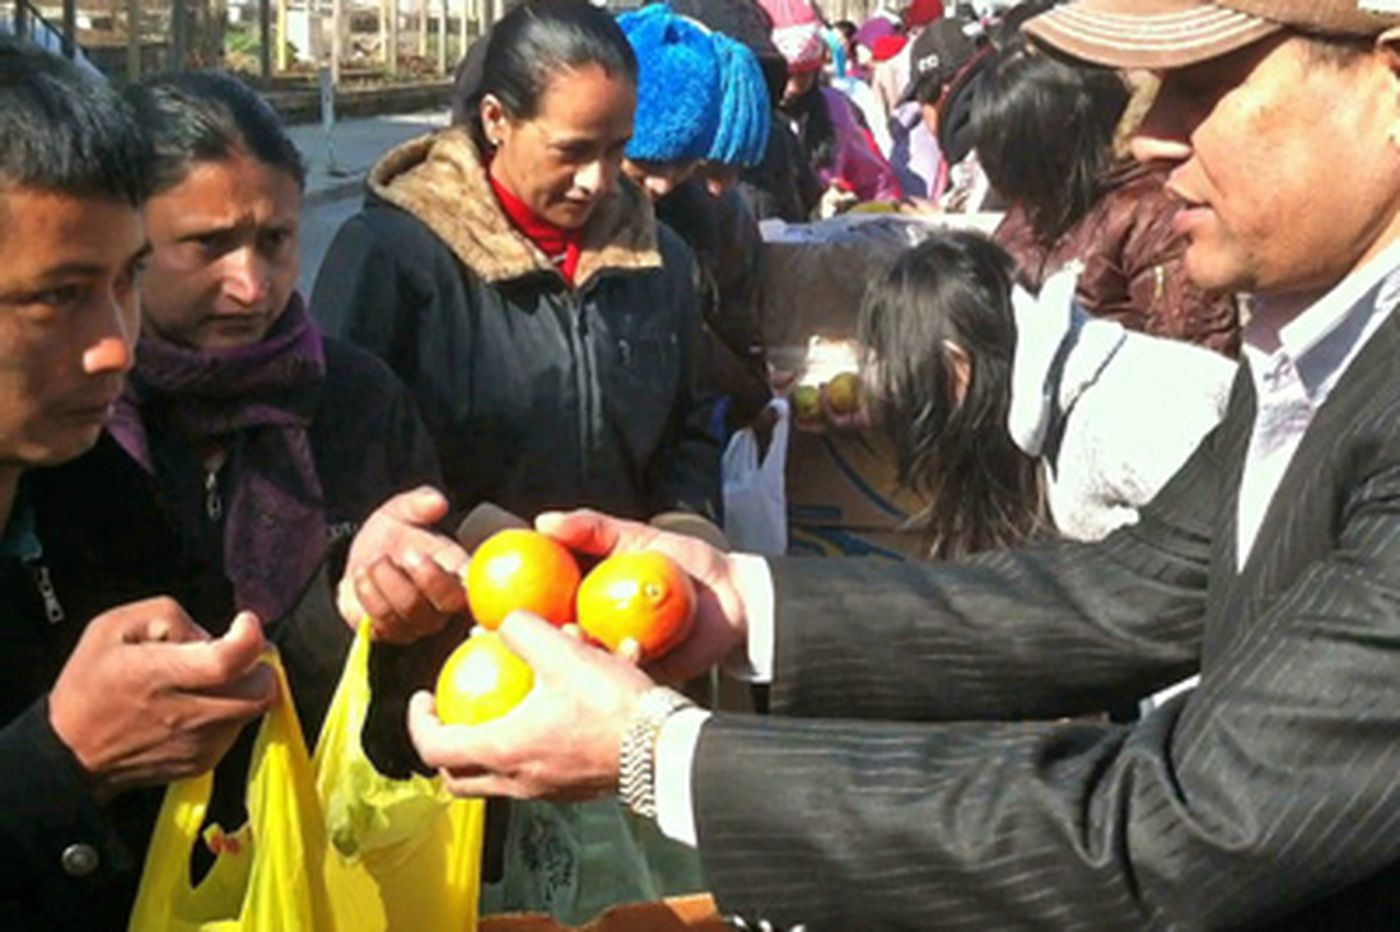 Donated fruit a godsend to new wave of immigrants